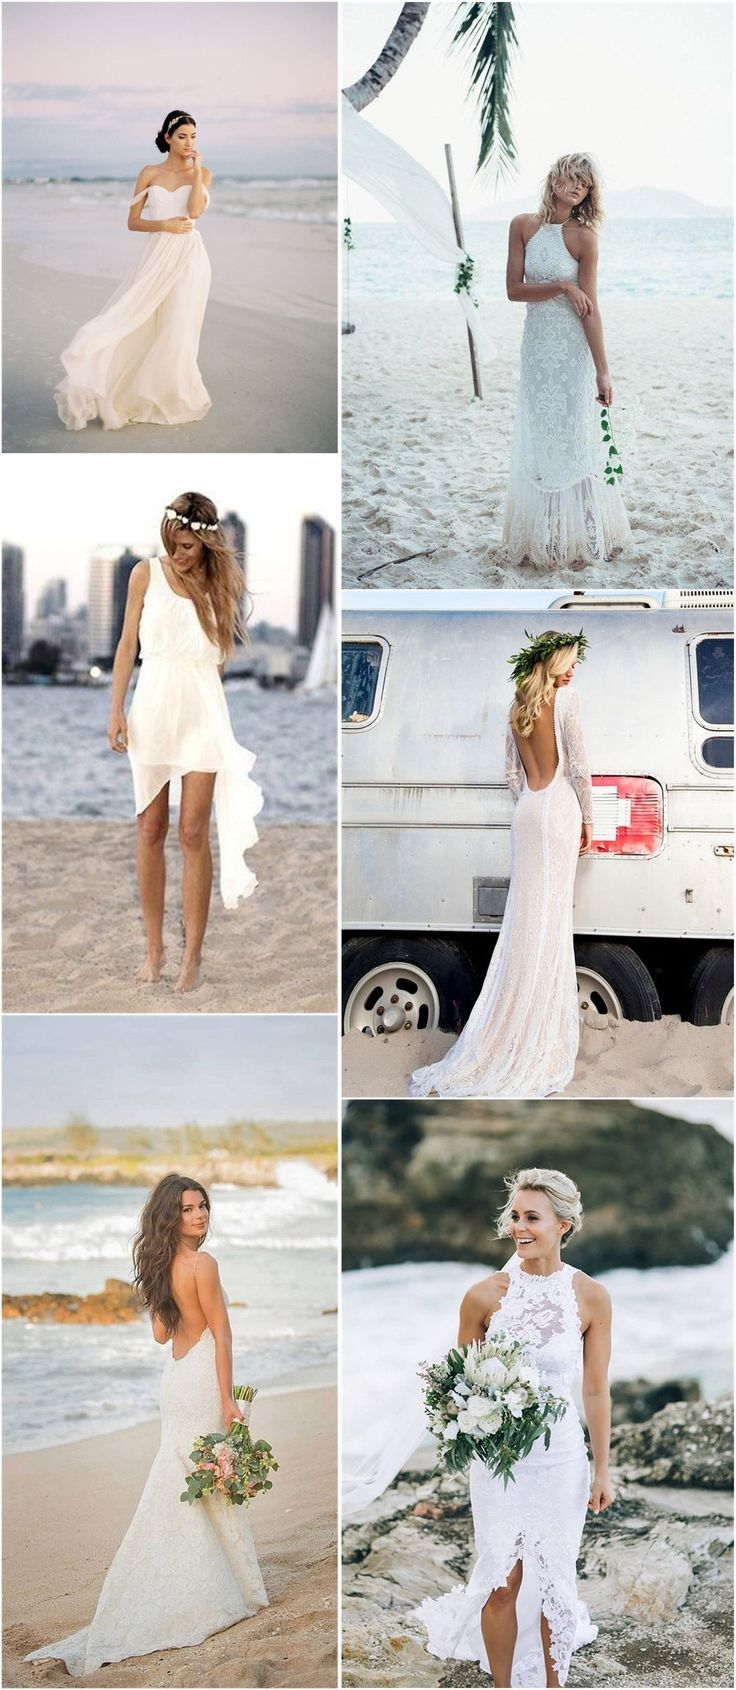 Beach wedding dresses top strand brautkleider ideen sie zu